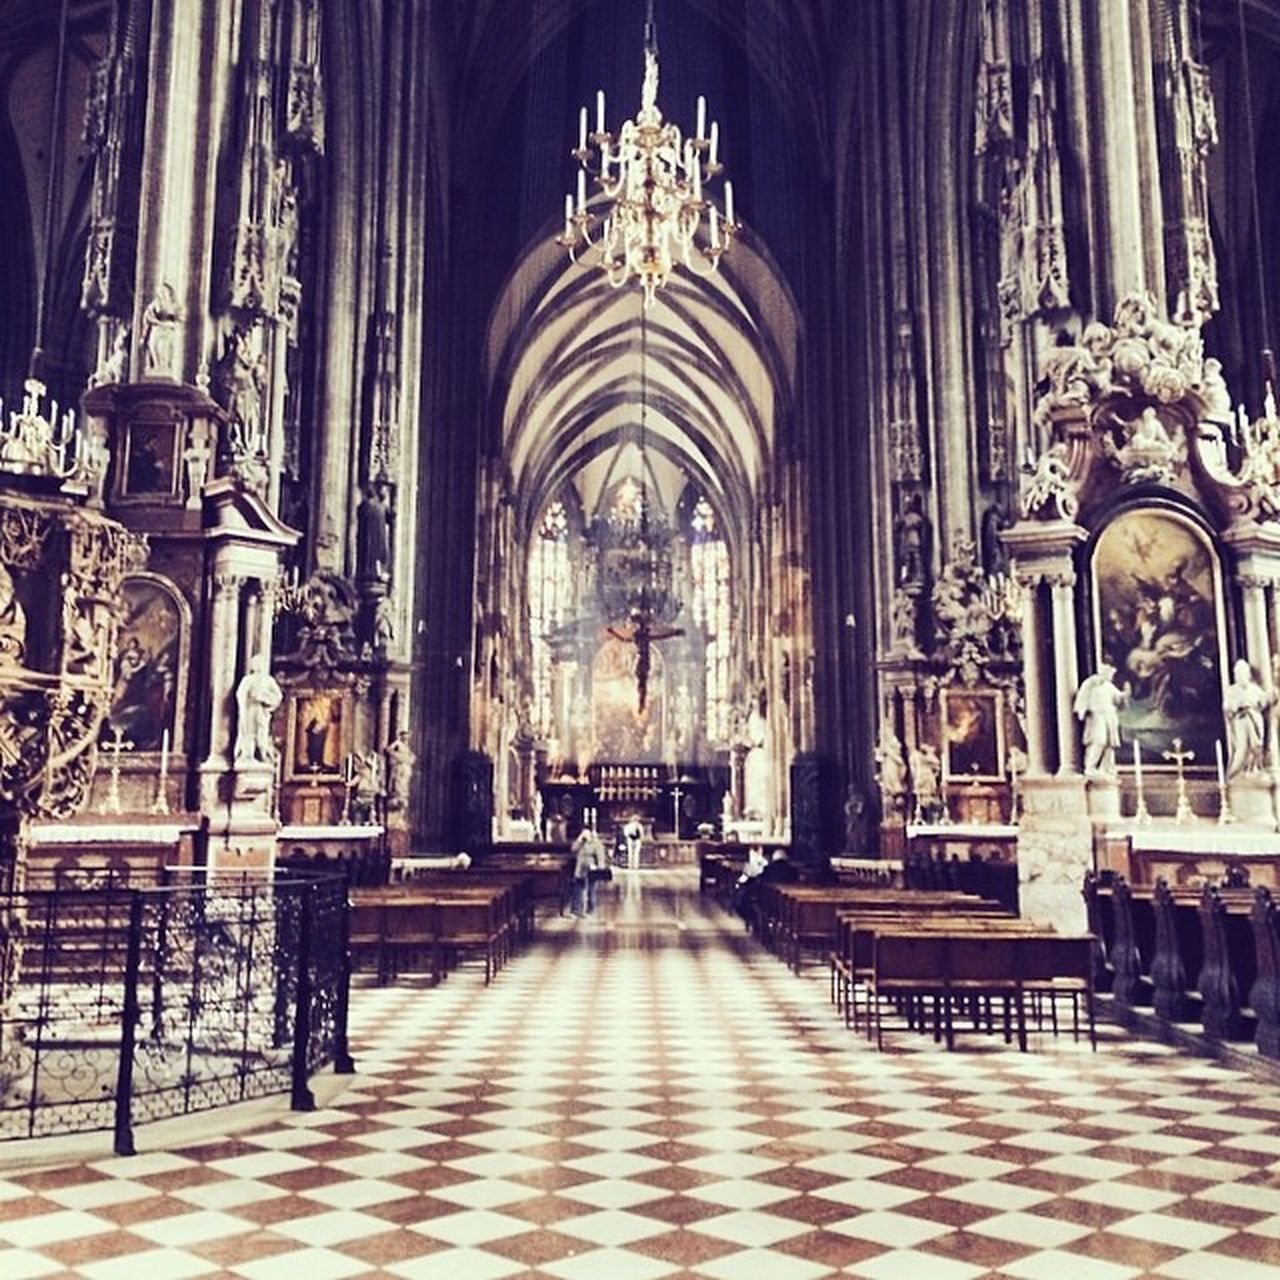 religion, place of worship, spirituality, architecture, pew, history, indoors, built structure, travel destinations, no people, altar, day, sculpture